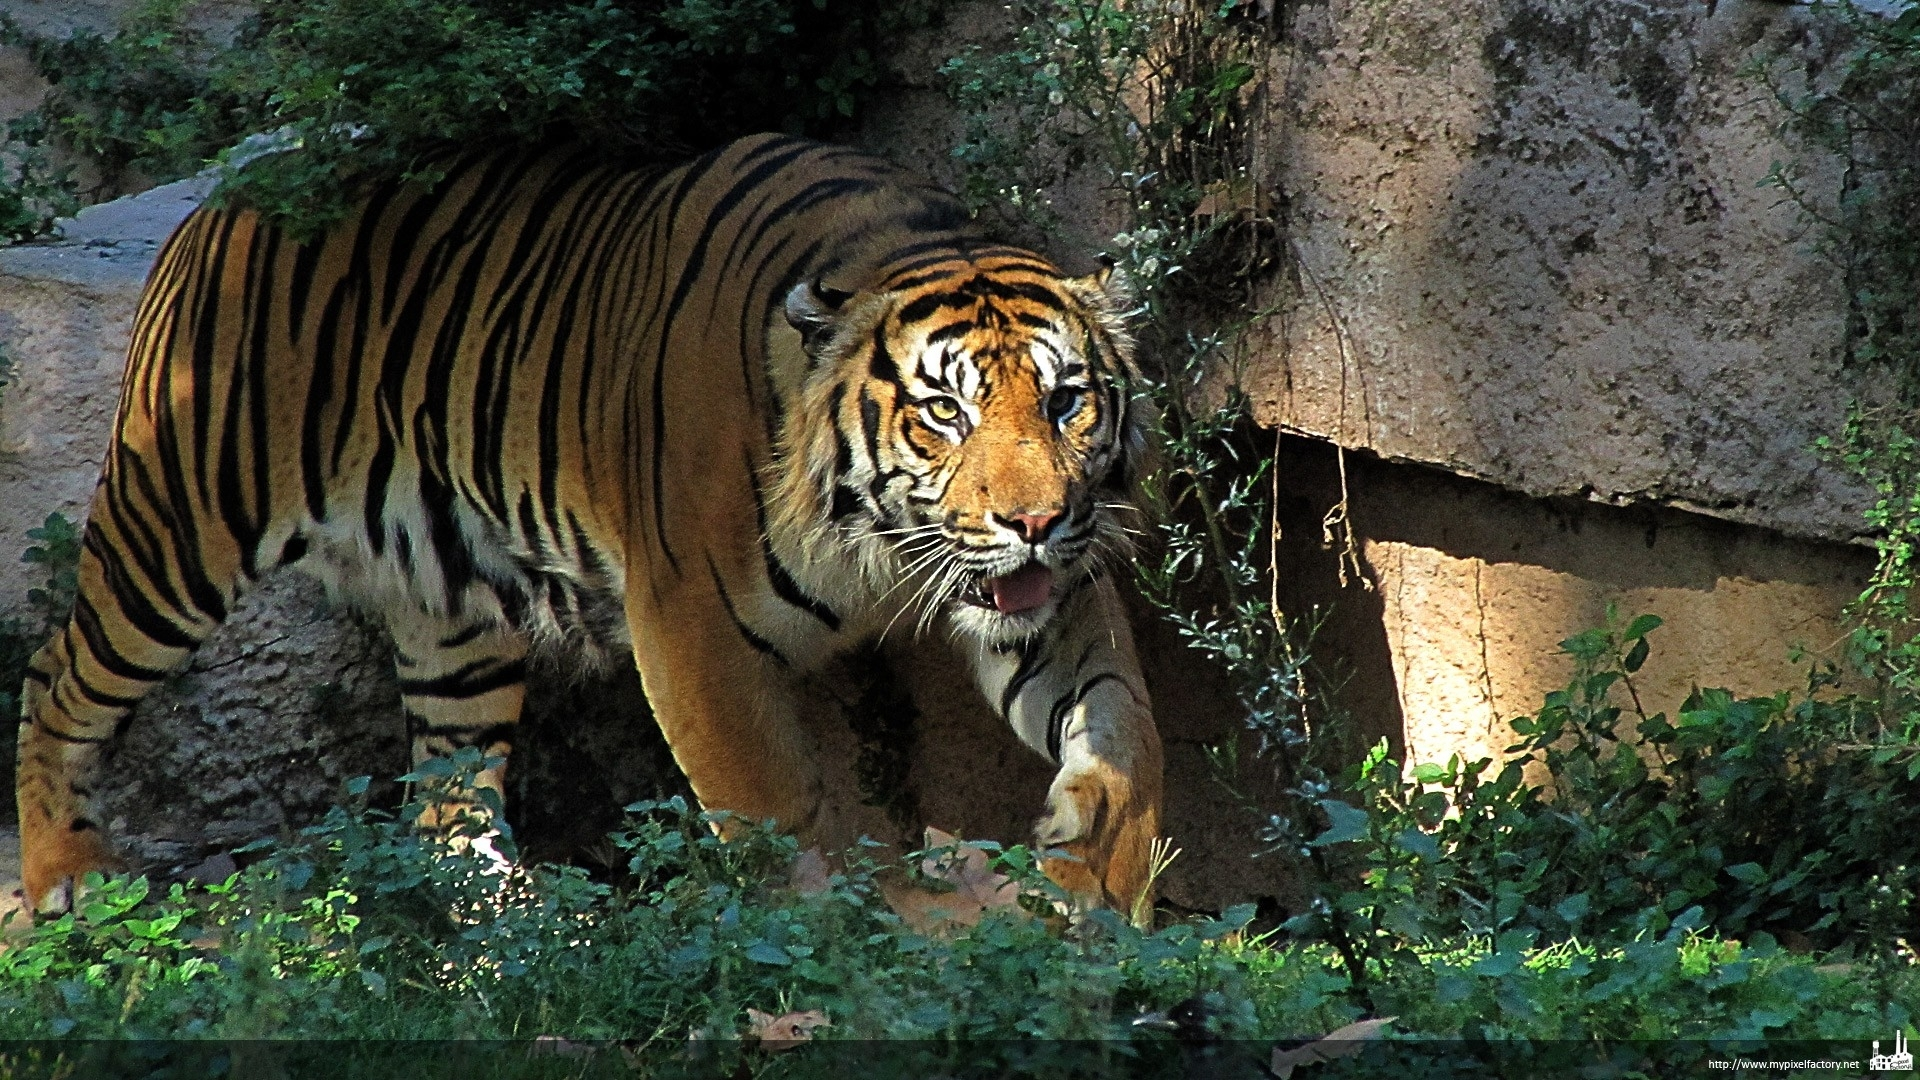 Tiger Full HD Wallpaper and Background | 1920x1080 | ID:376851